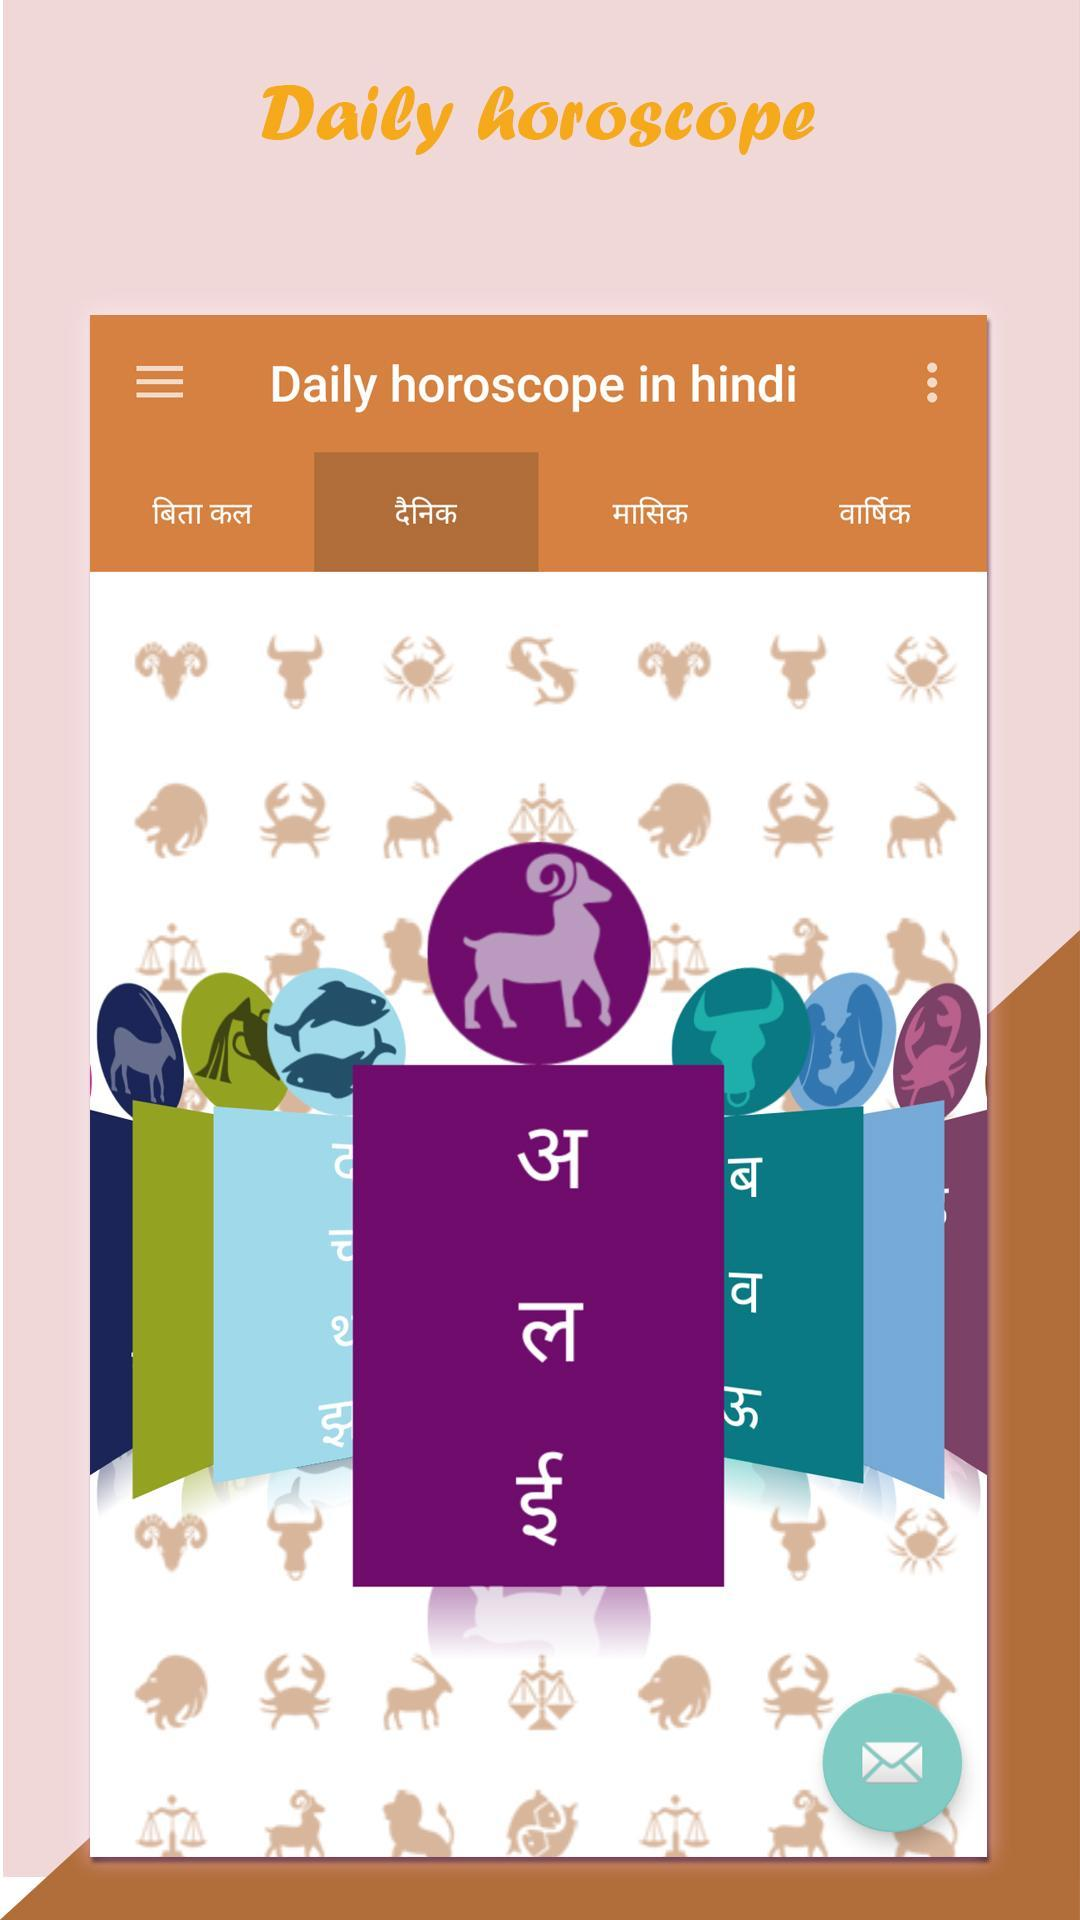 daily horoscope in hindi for Android - APK Download